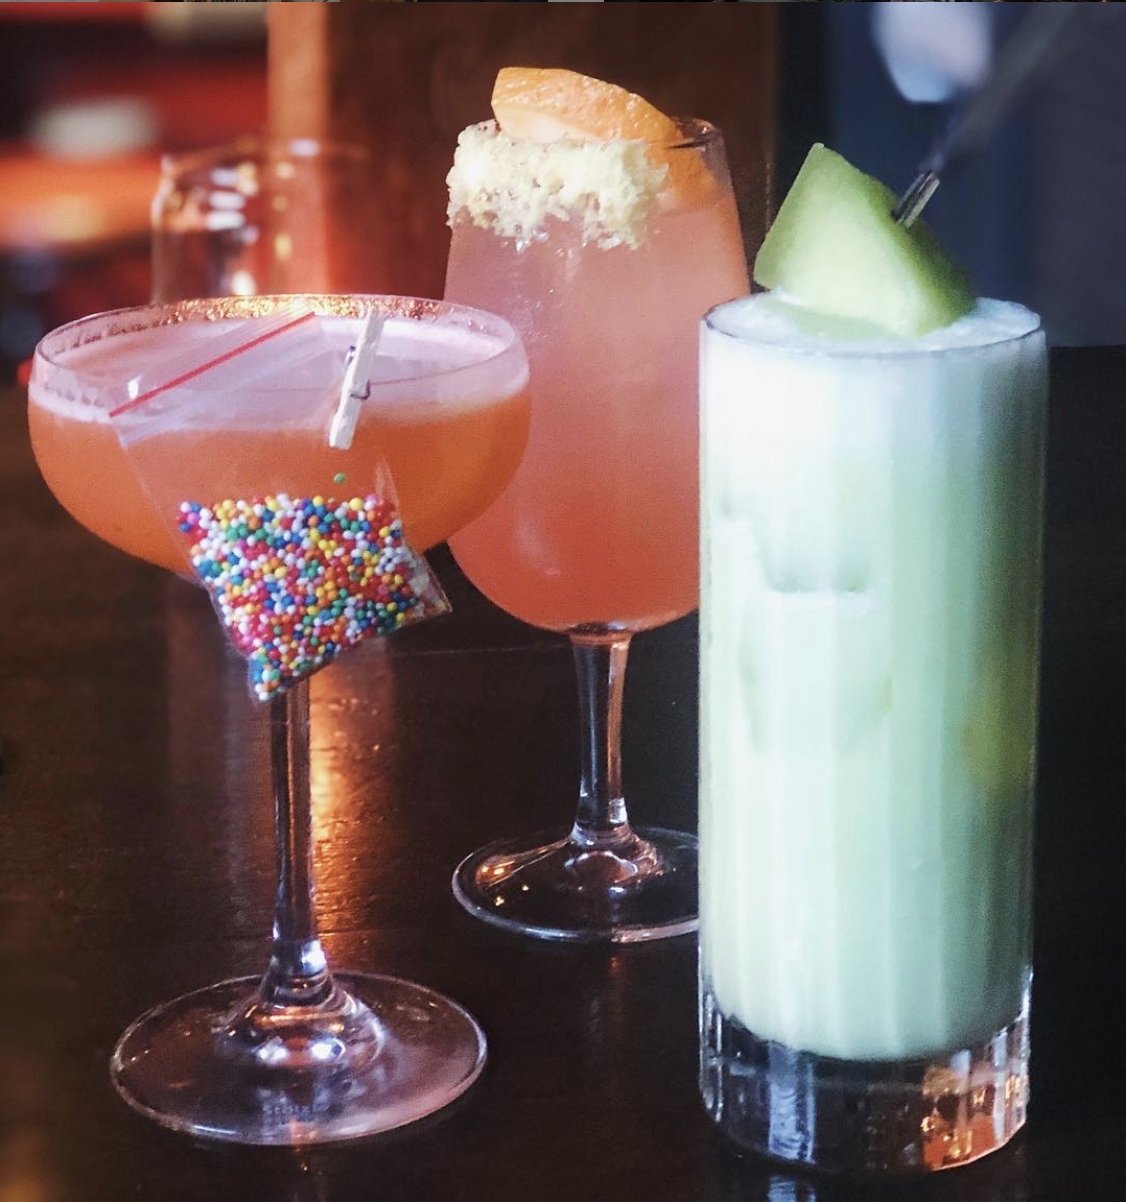 Three colourful cocktails in all different glass shapes, garnished with fruits and sprinkles